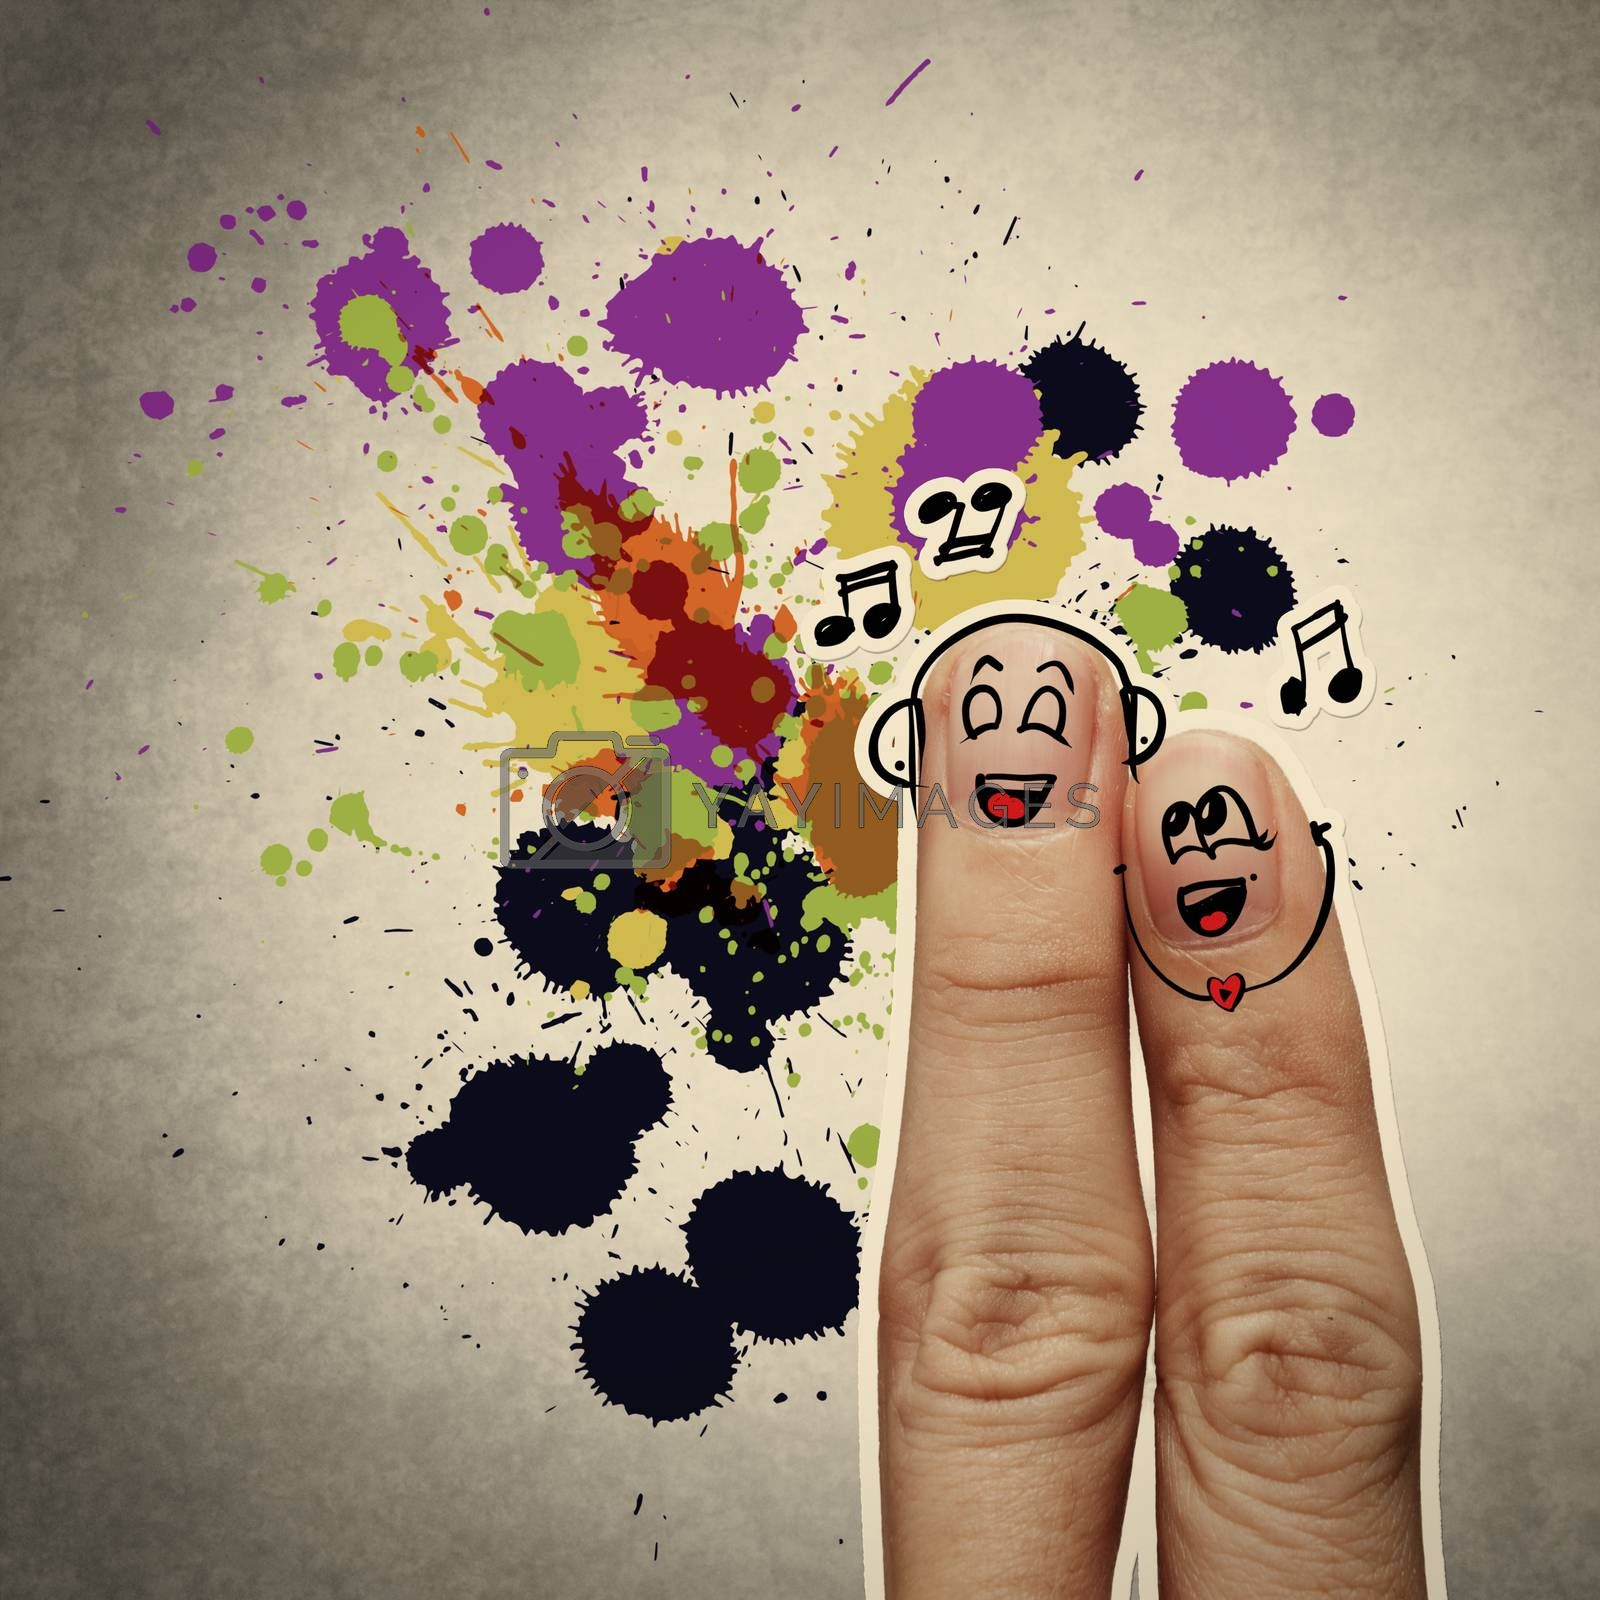 the happy finger couple in love with painted smiley and sing a song on splash colors background